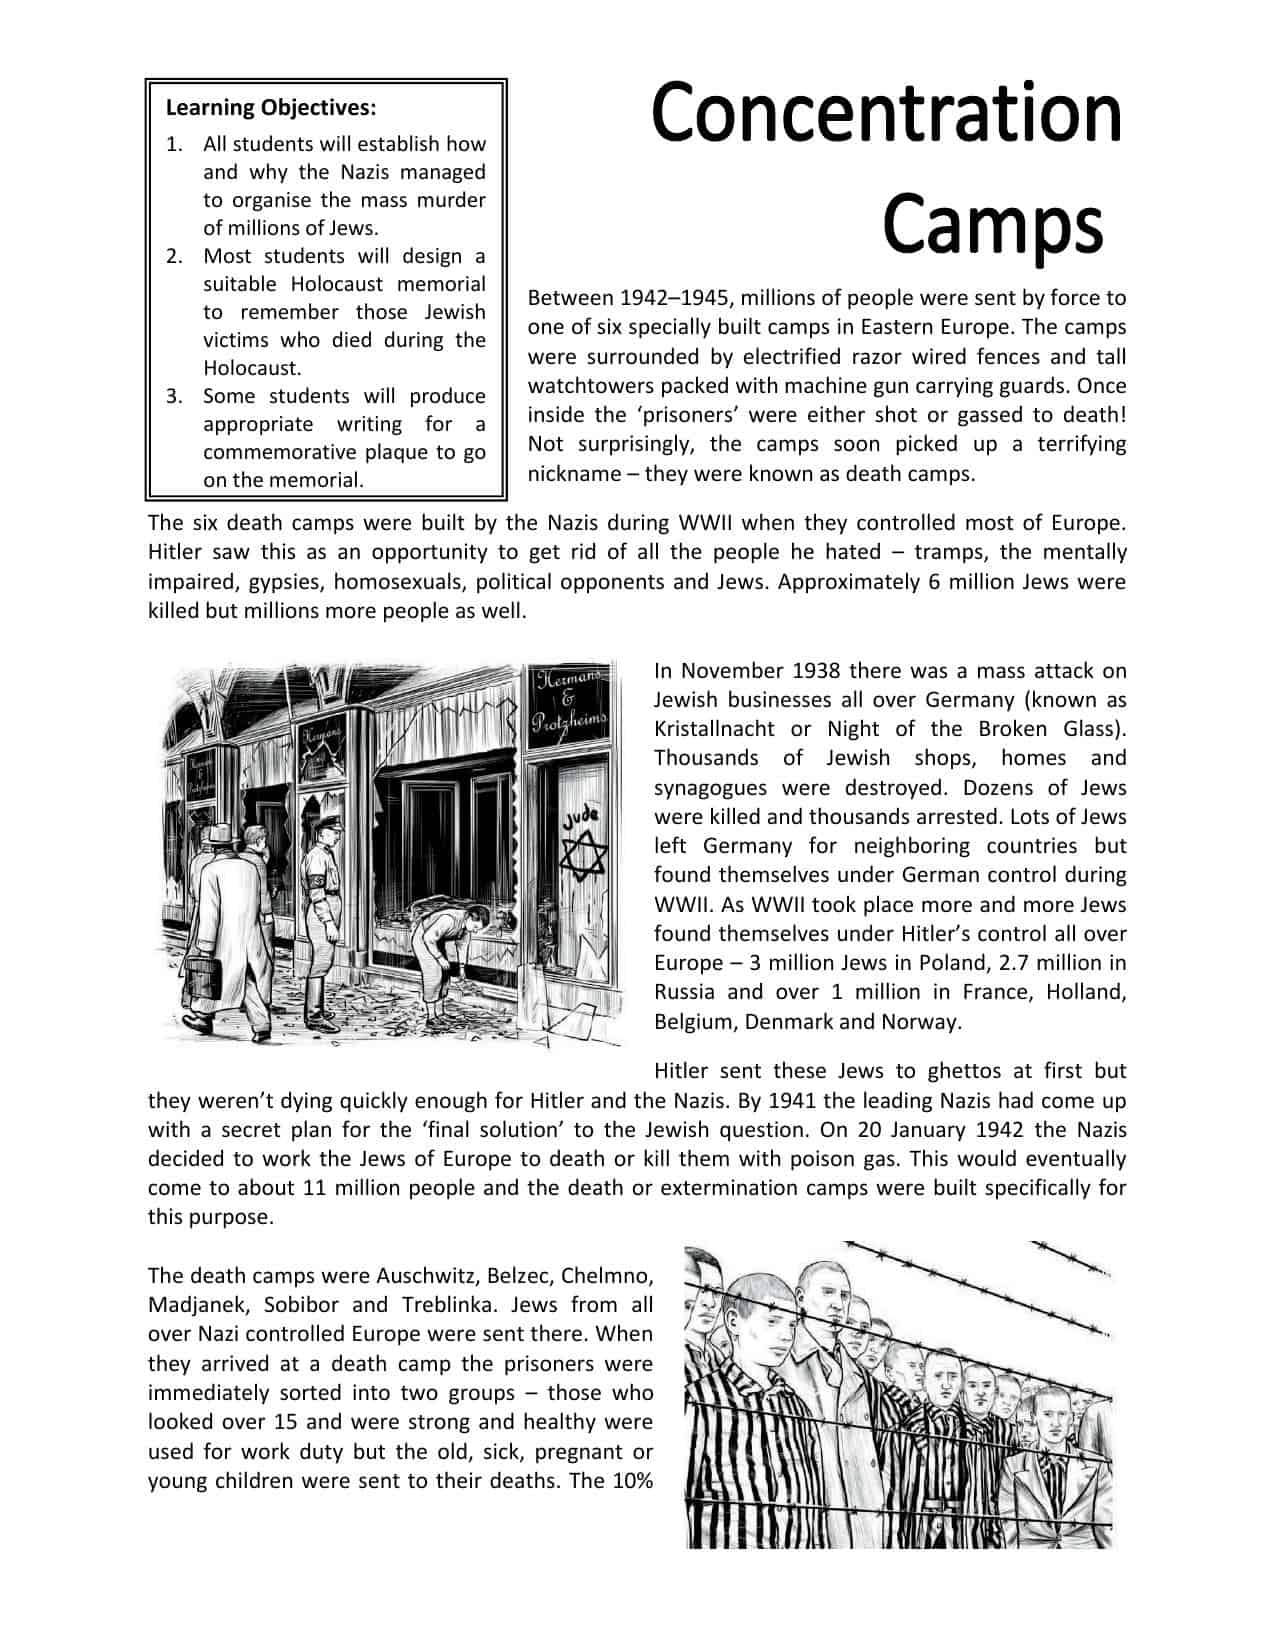 The Holocaust Worksheets